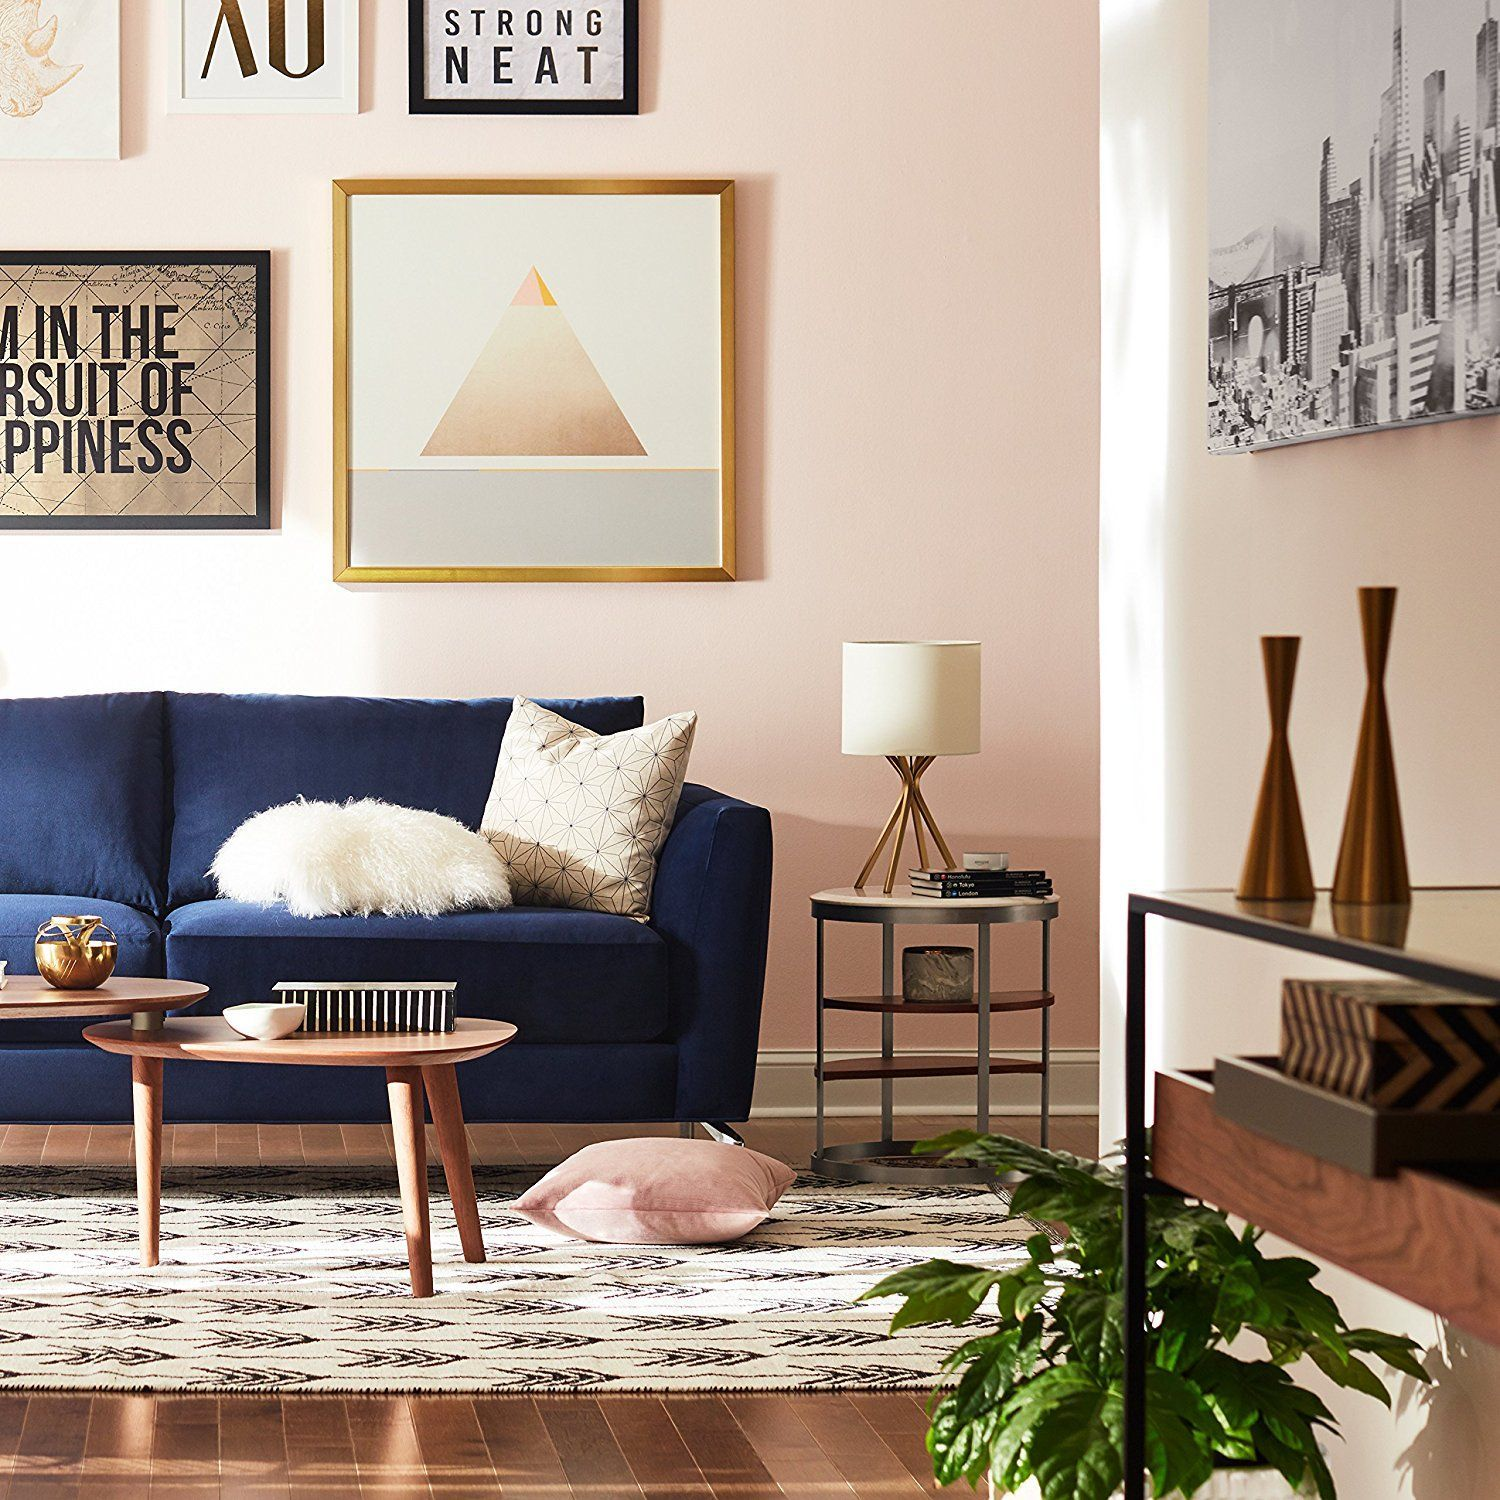 Blush Wall Color With A Navy Blue Couch Giving The Look A Perfect Calm Modern Living Room Style Blue Sofas Living Room Blue Couch Living Room Blue Couch Living